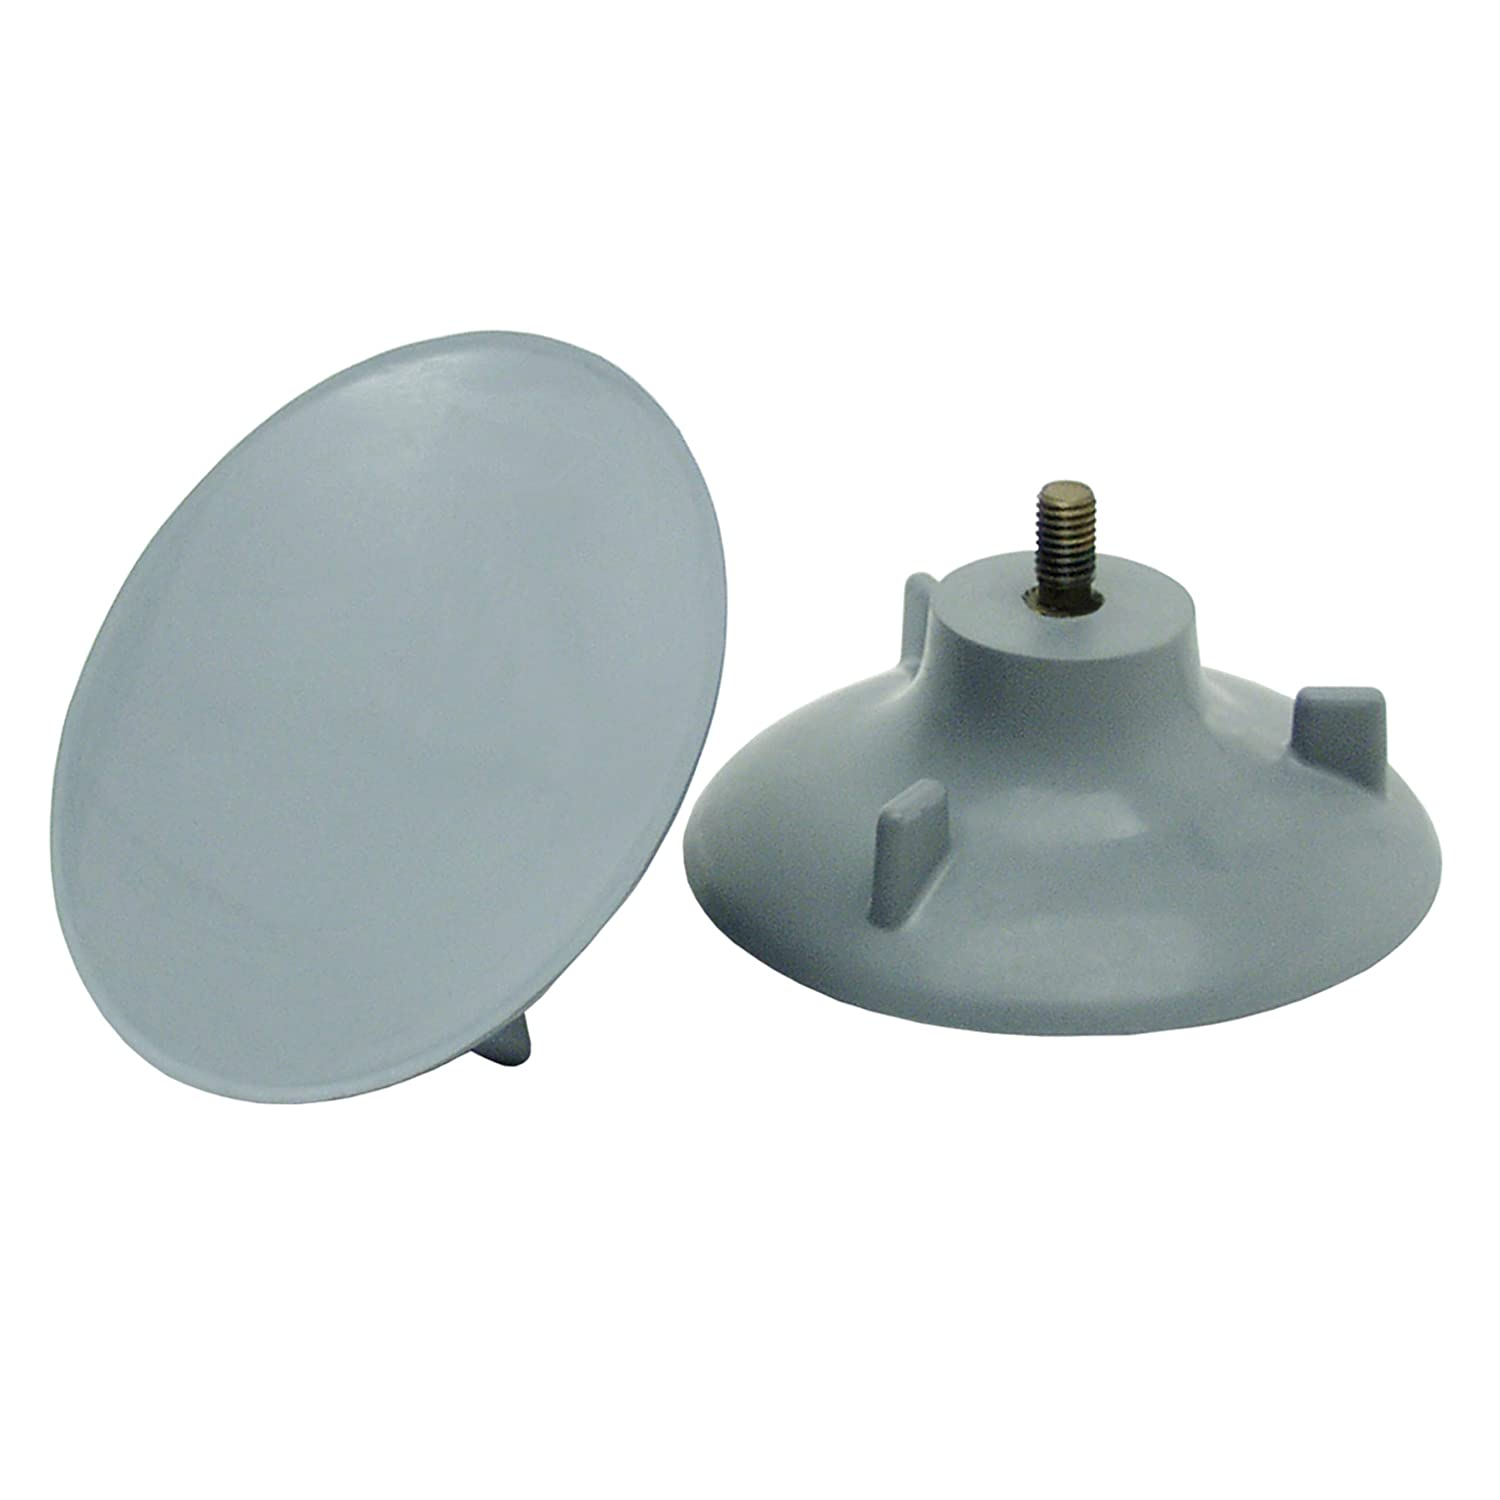 Lumex Suction Cups - 2021 new Inventory cleanup selling sale Nonskid Shower Rubber Fe Strong Replacement